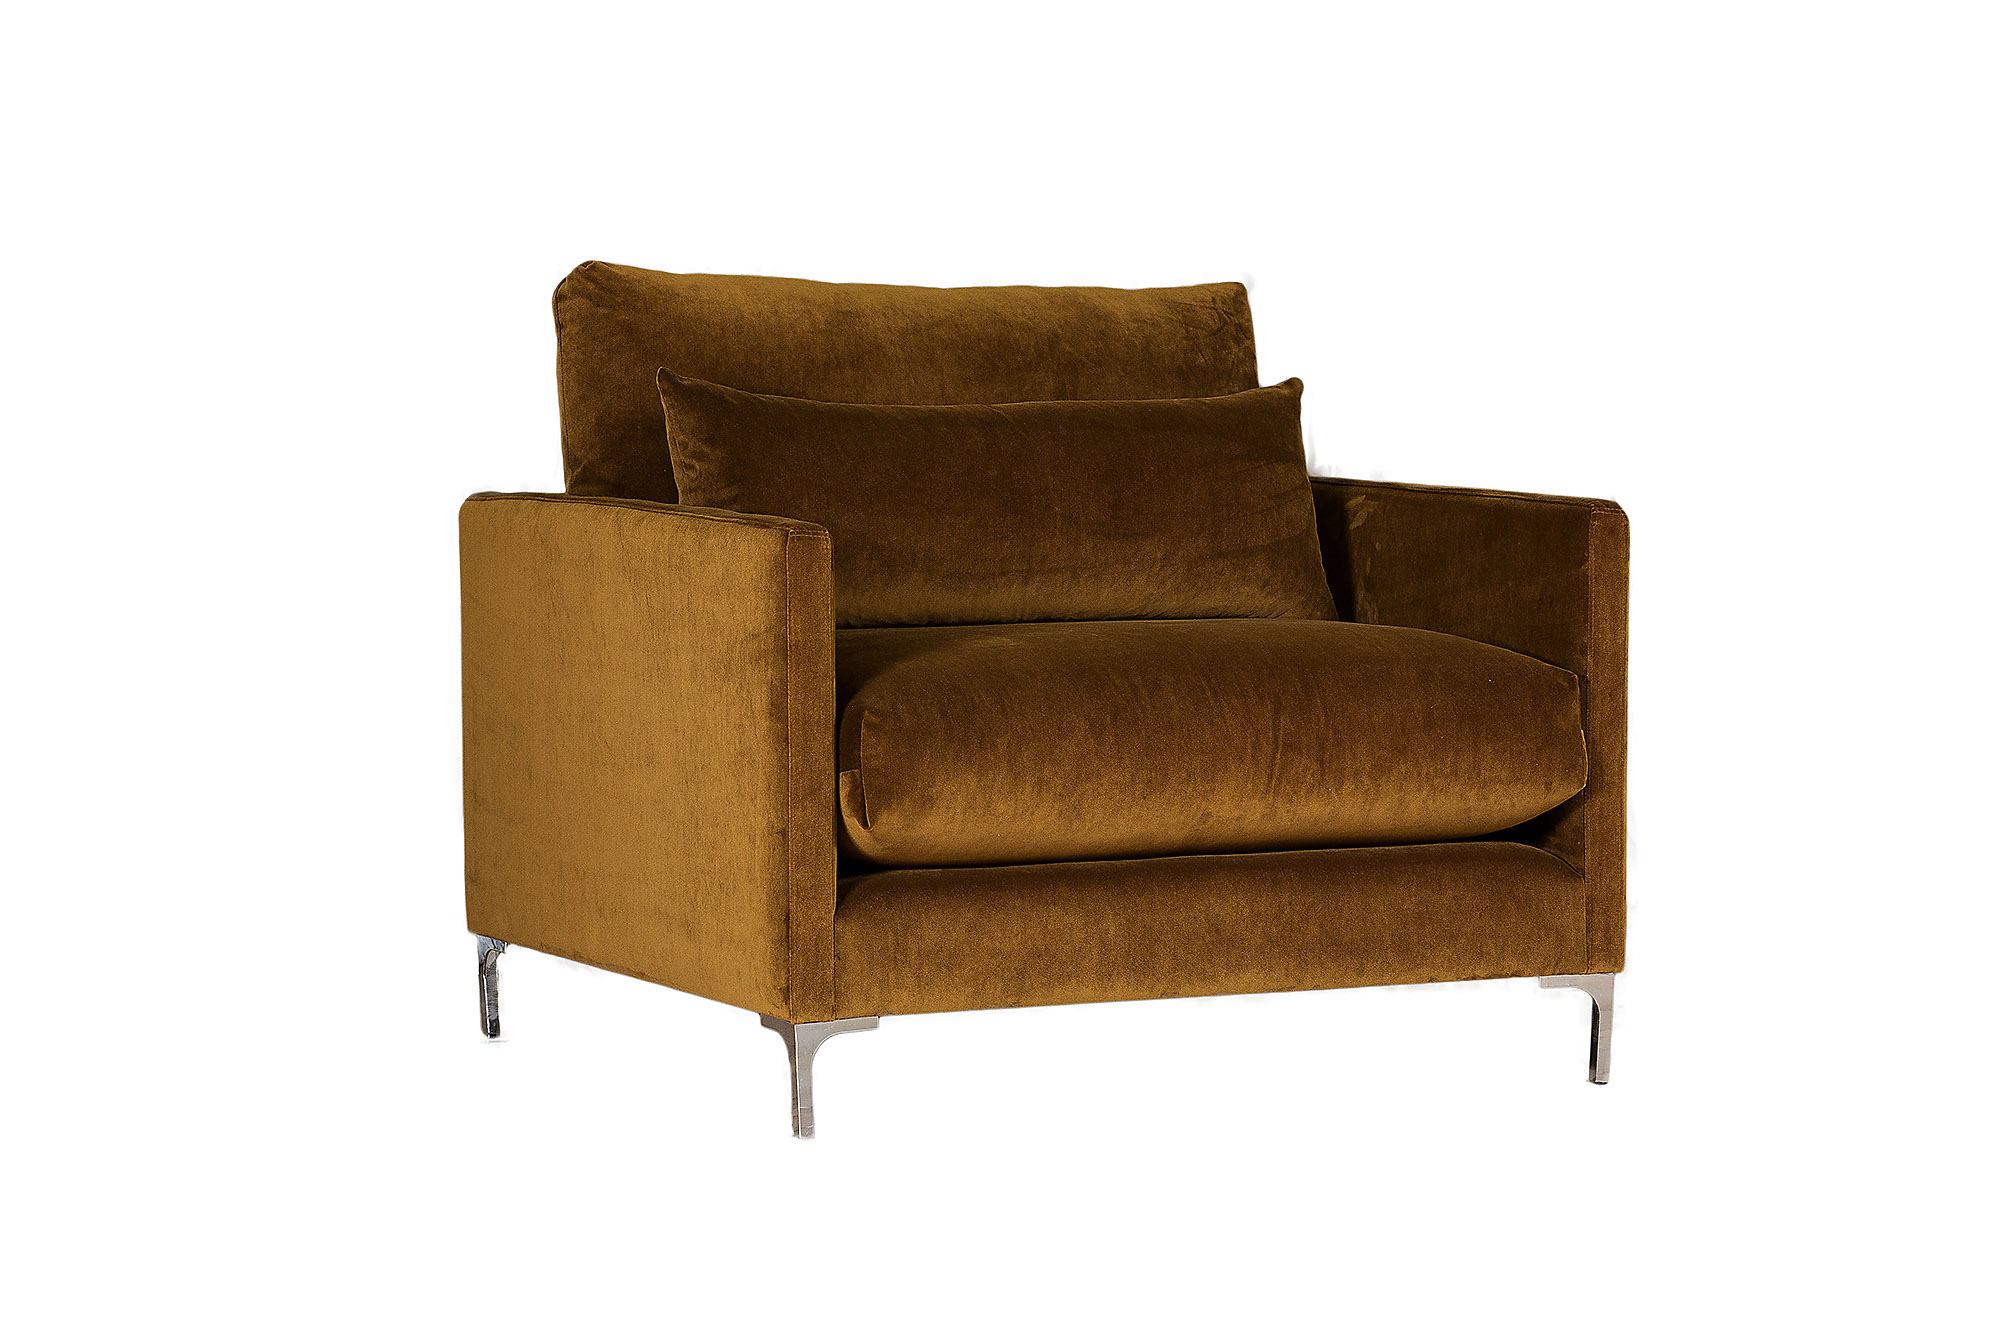 Christchurch Commercial Photographer Rebecca Claridge Photography sofa product photography interior design